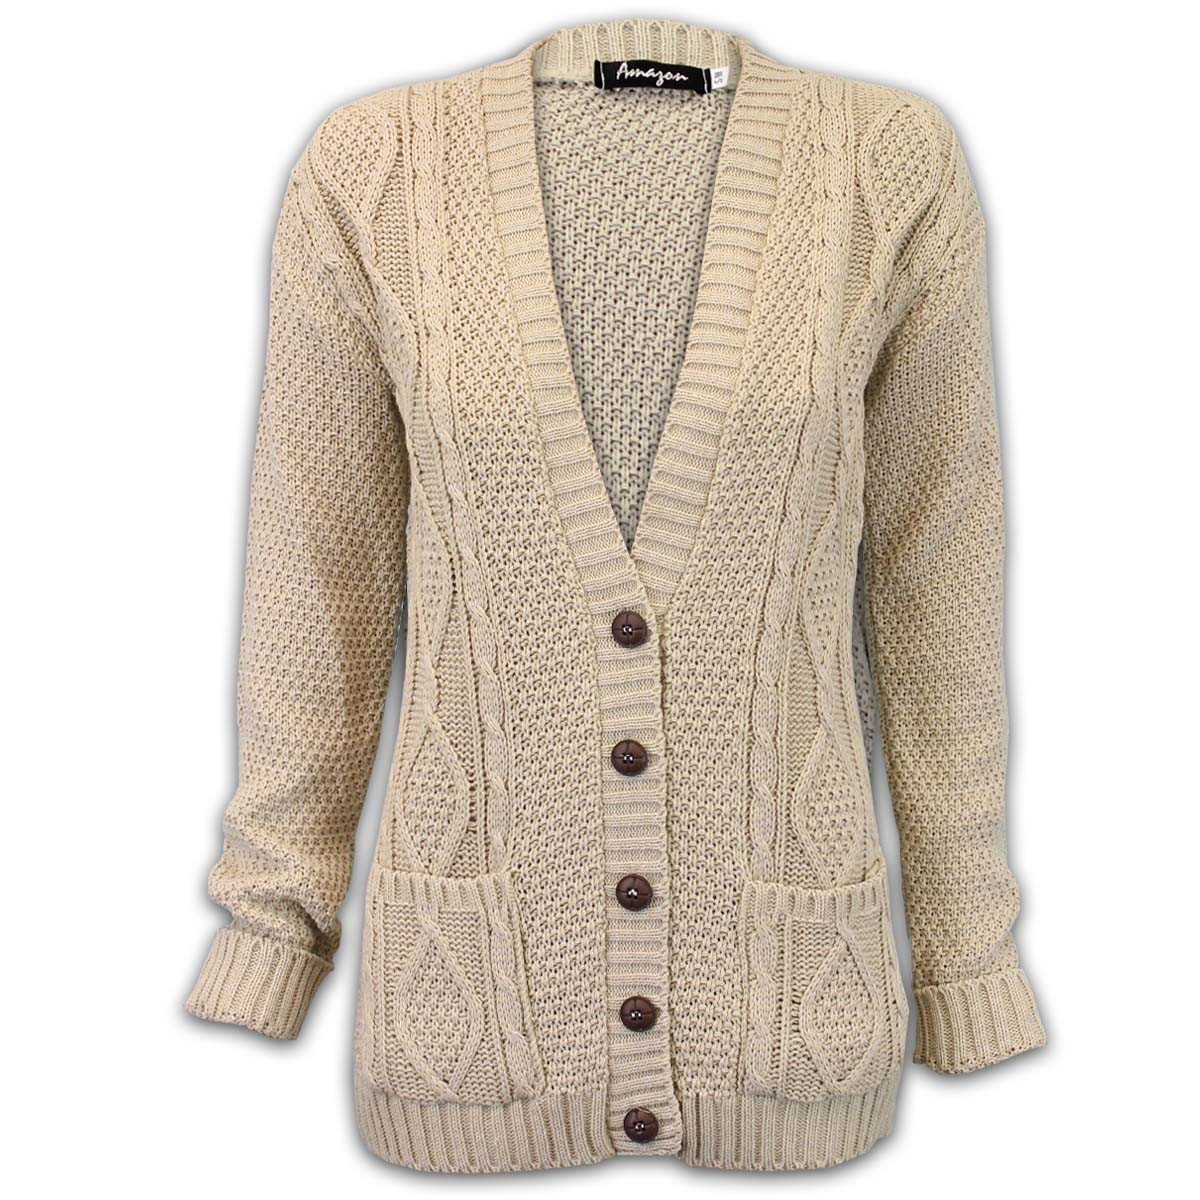 Knit Cardigan Inspirational La S Cardigans Womens Knitted Jumper Cable Jacquard Of Delightful 41 Ideas Knit Cardigan